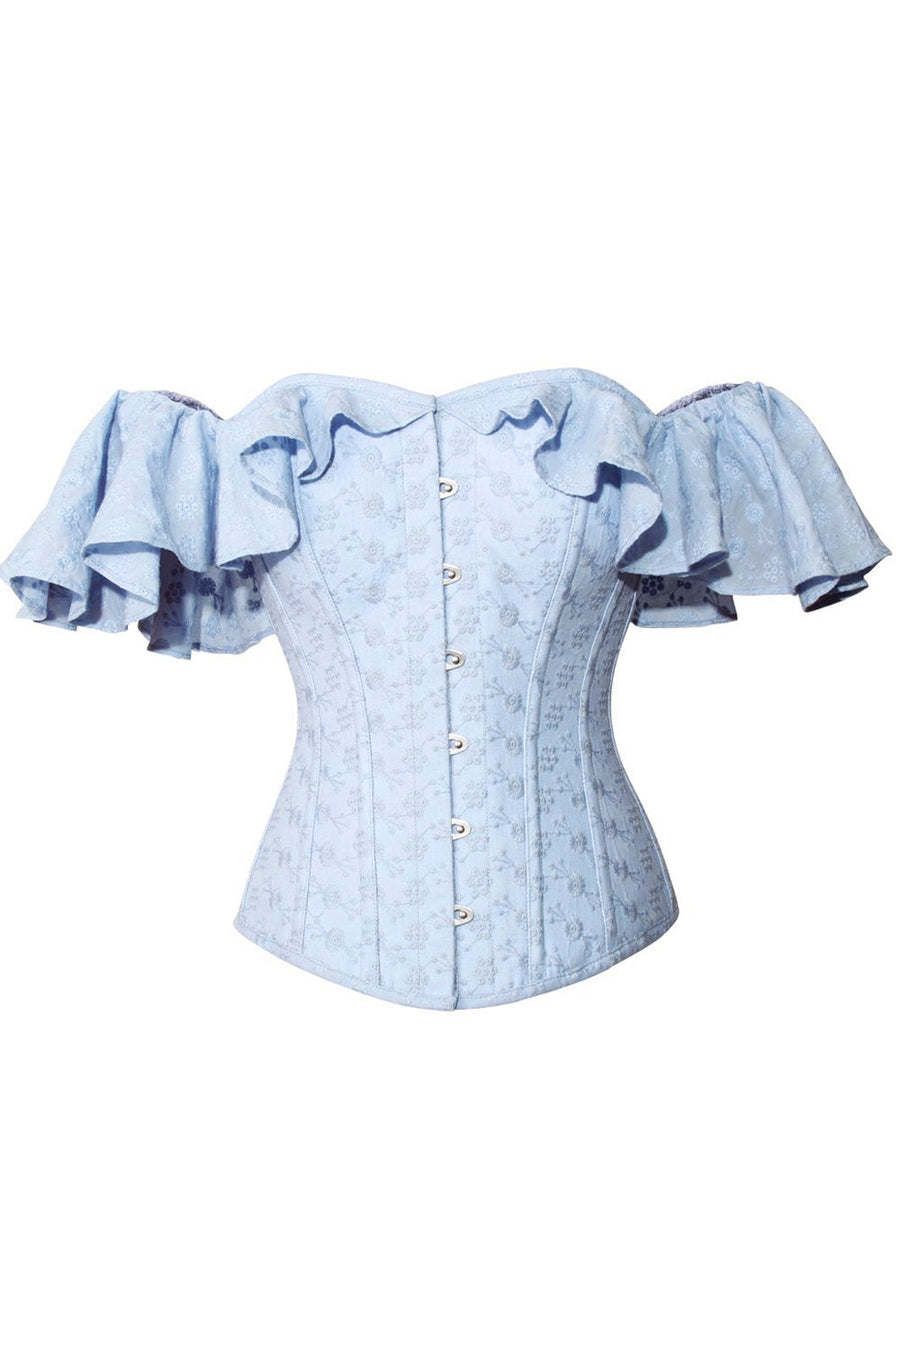 Pastel Cornflower Blue cotton corset top with dramatic sleeve